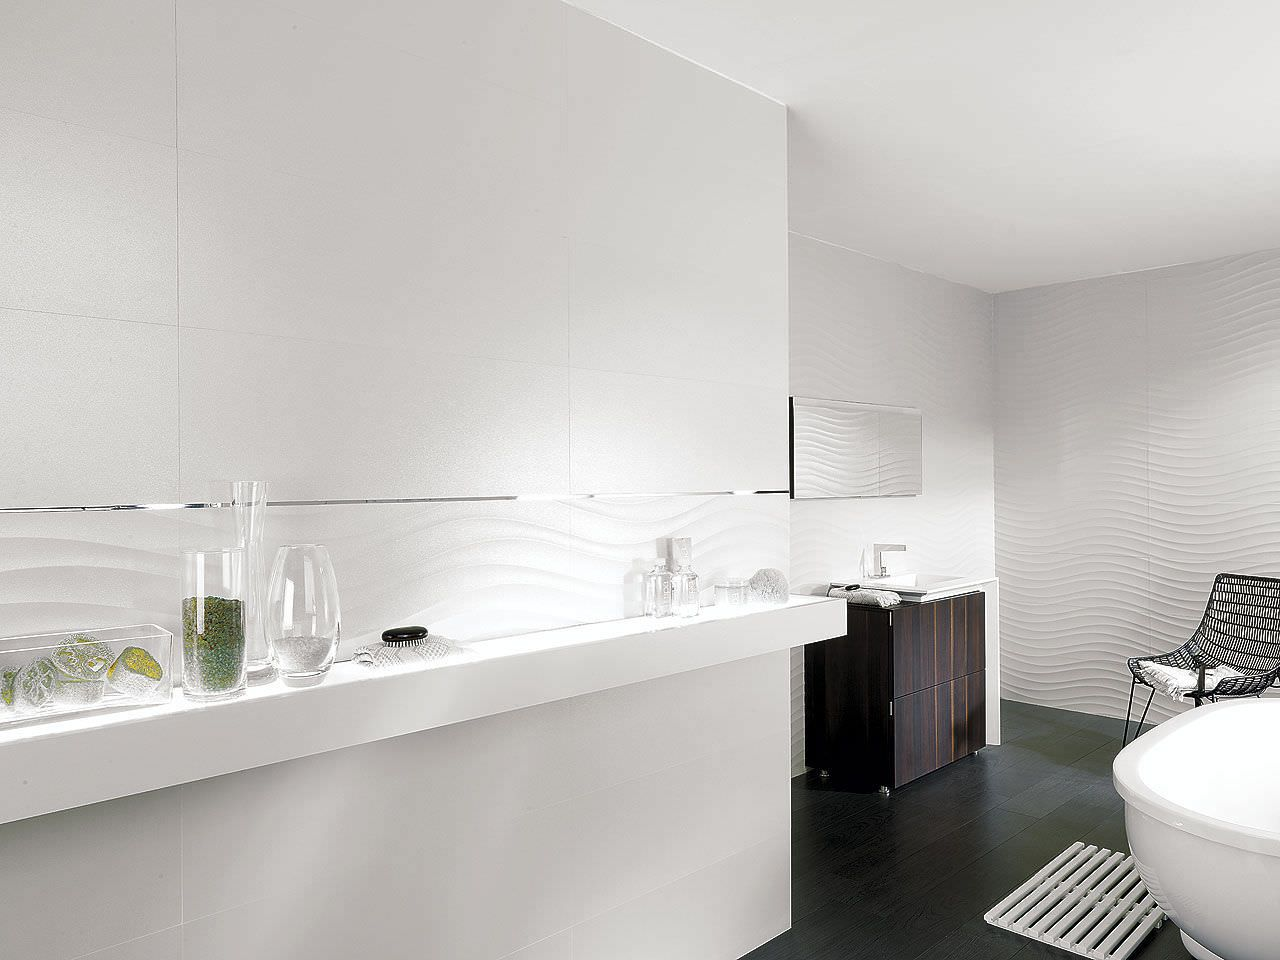 Porcelanosa Carrelage Contemporary Bathroom Porcelanosa Interior Design